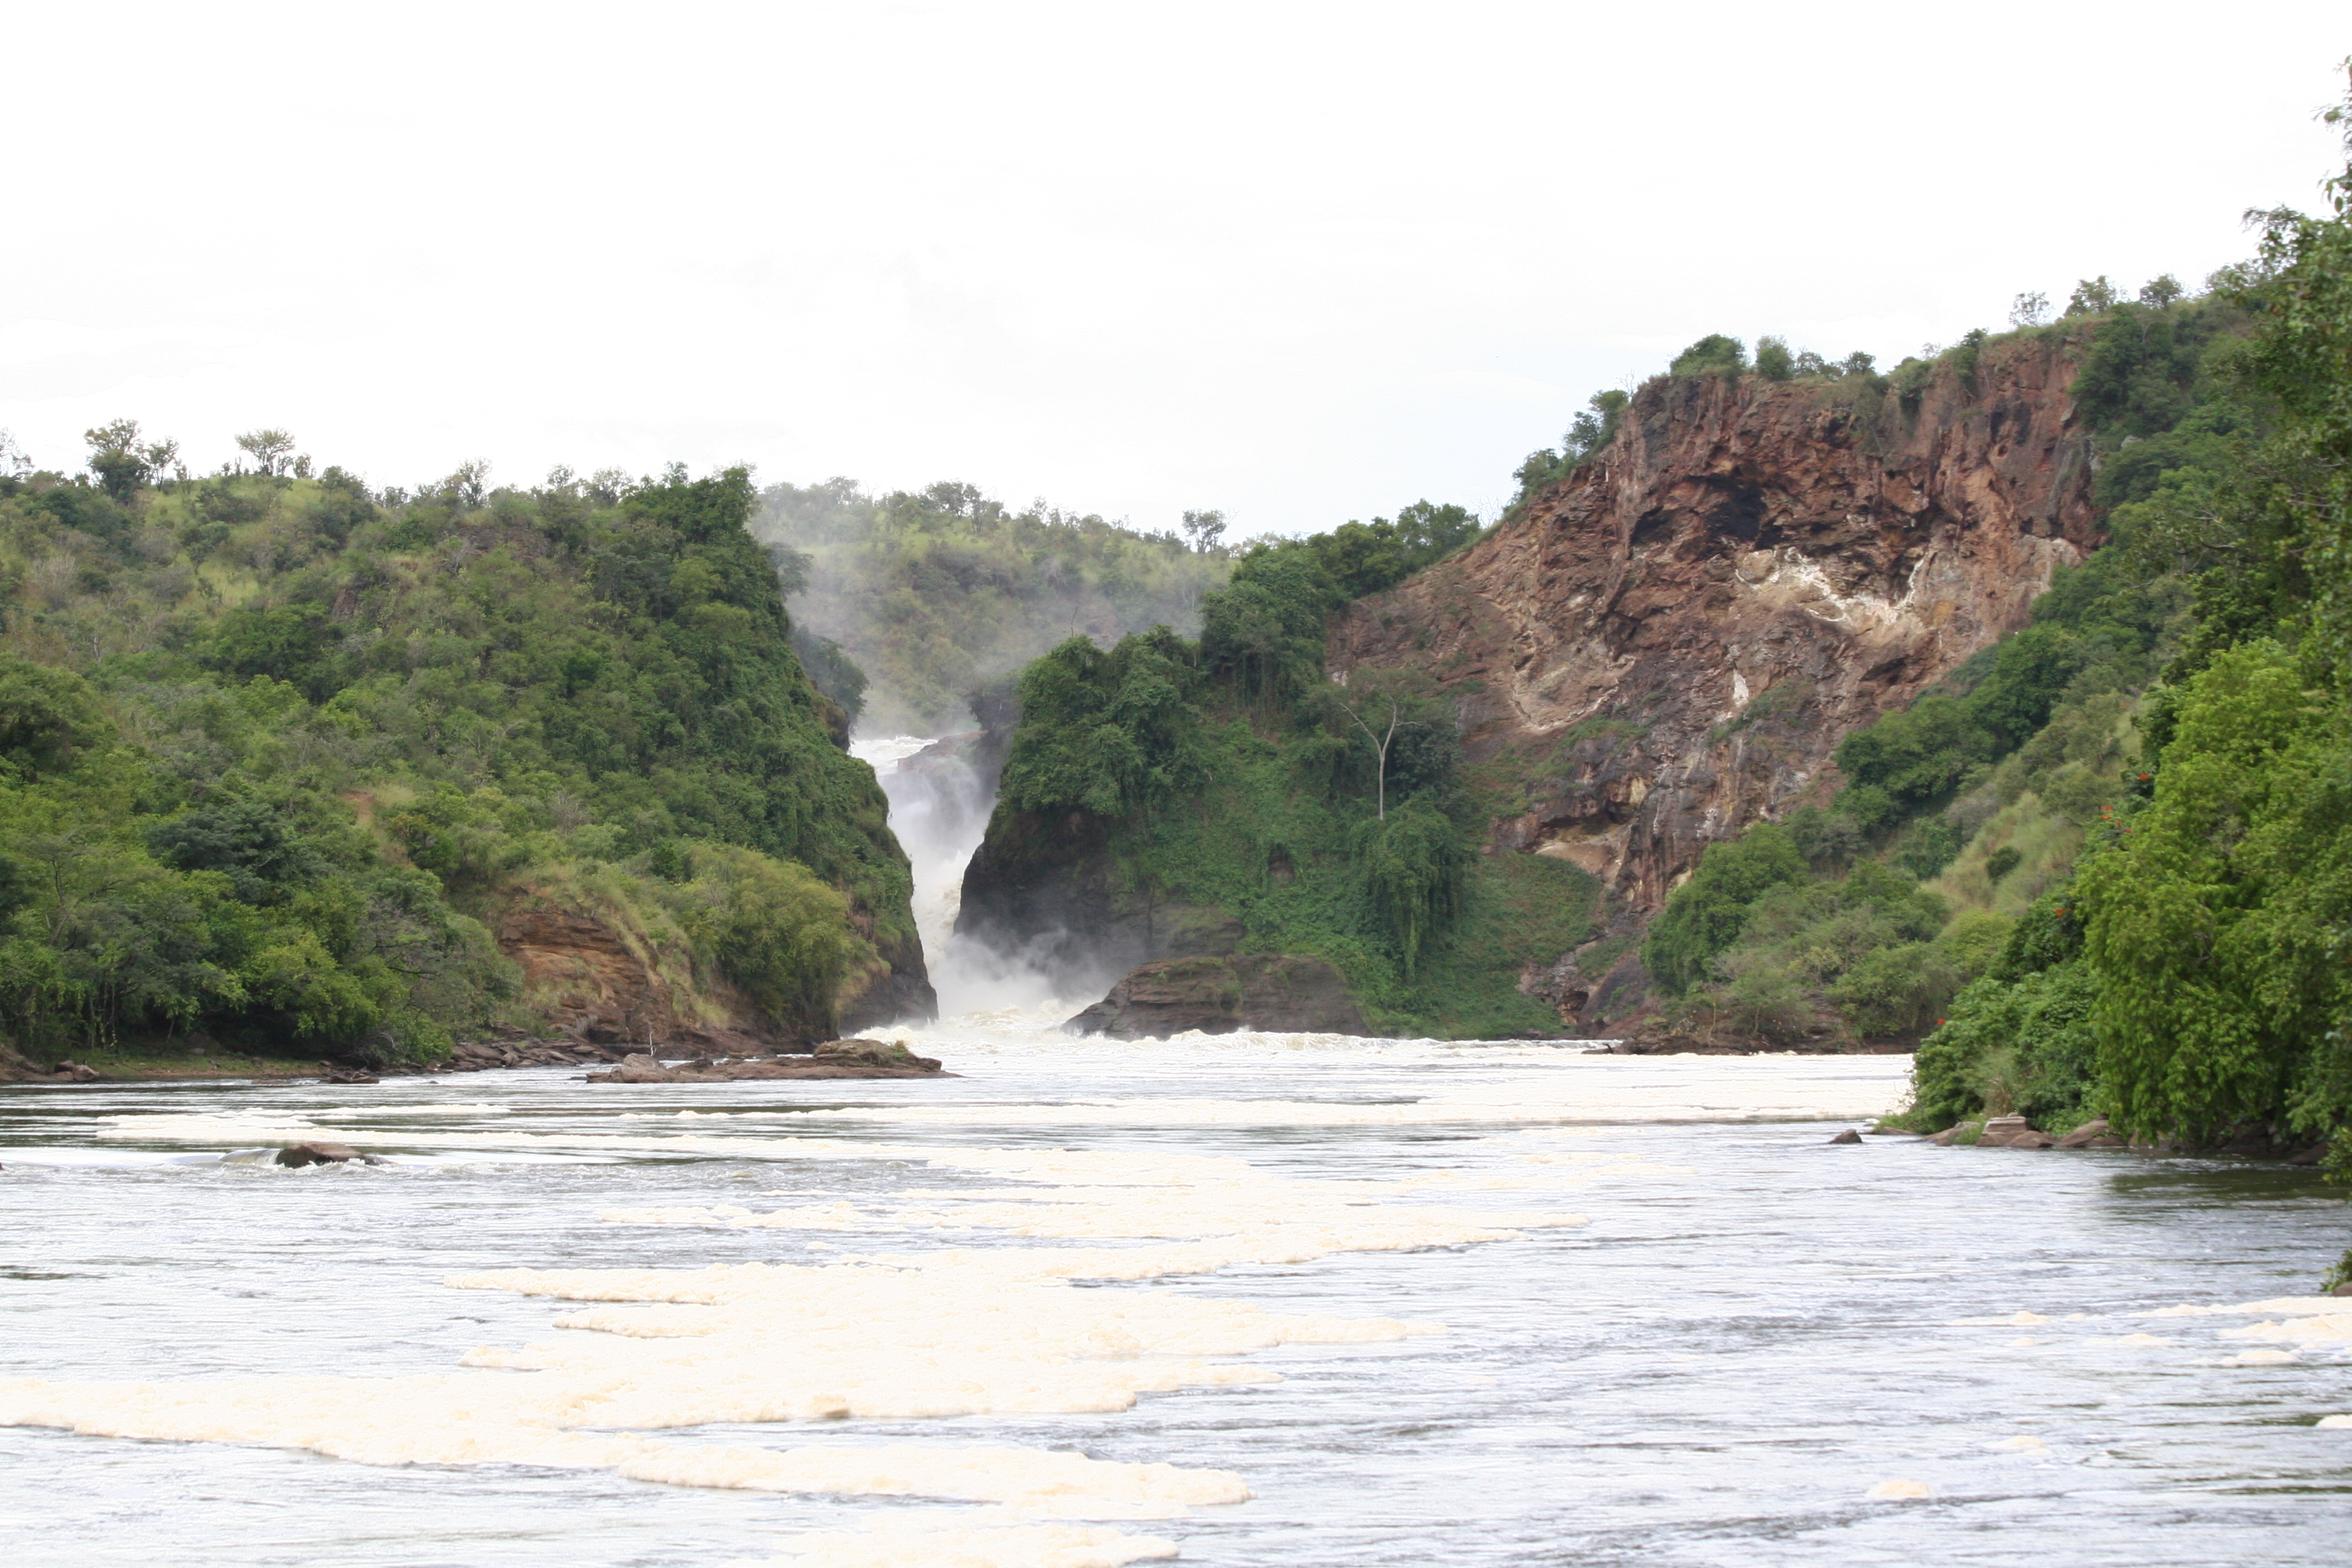 Museveni Roots for Cooperation in Management of Africa's Transboundary Lakes and Rivers